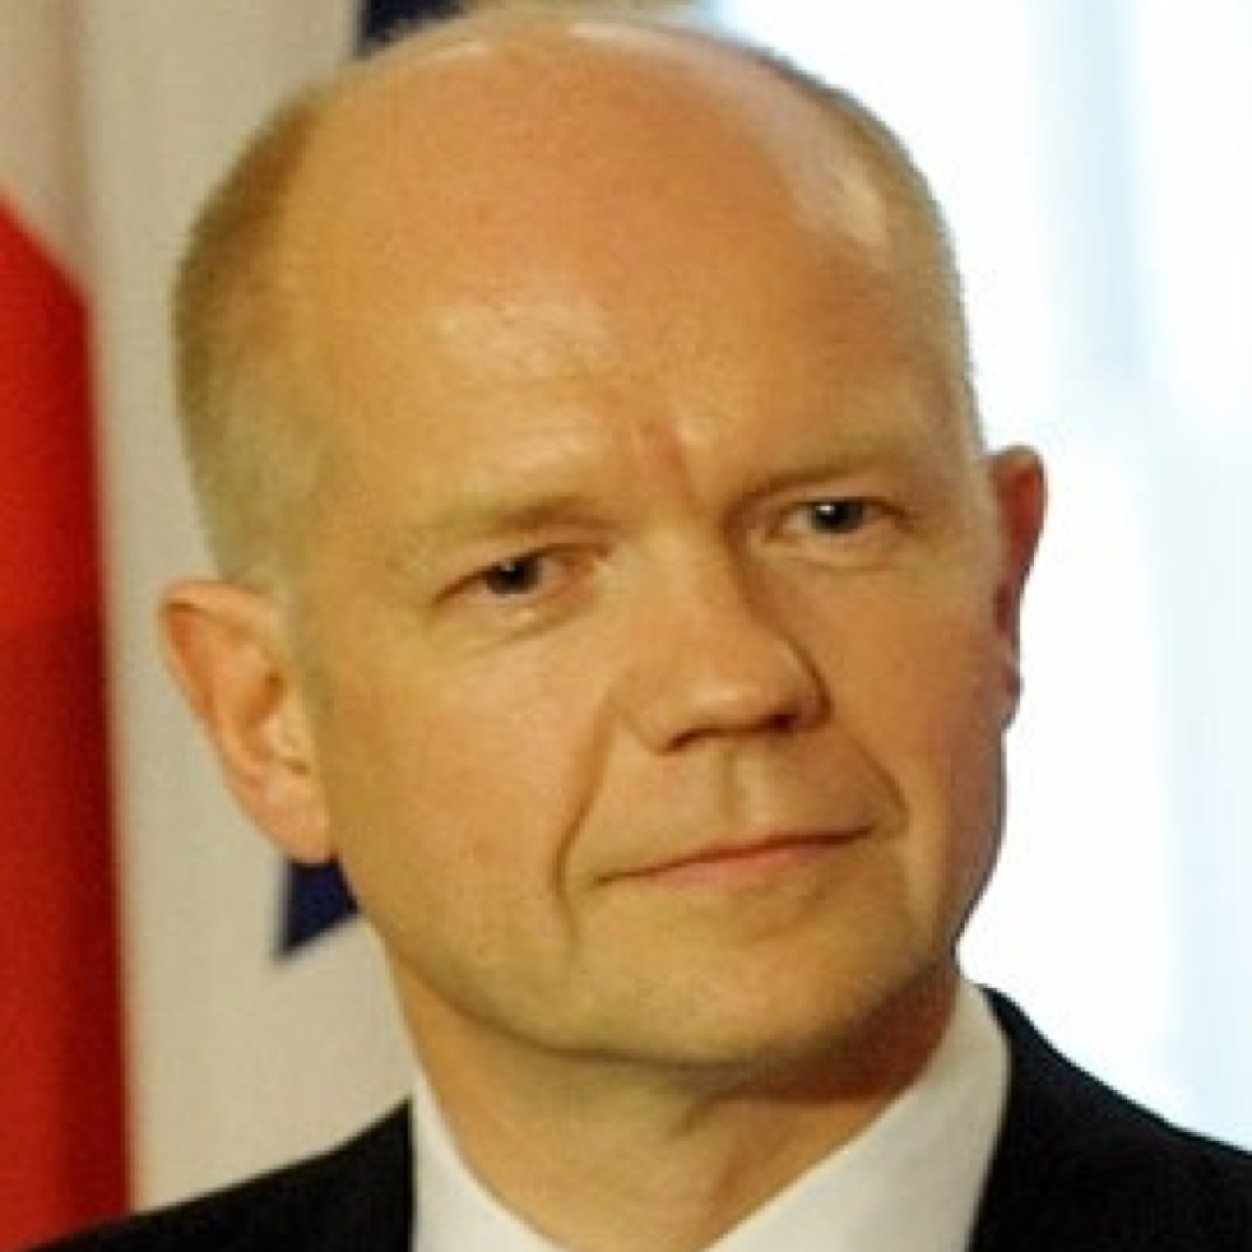 @WilliamJHague